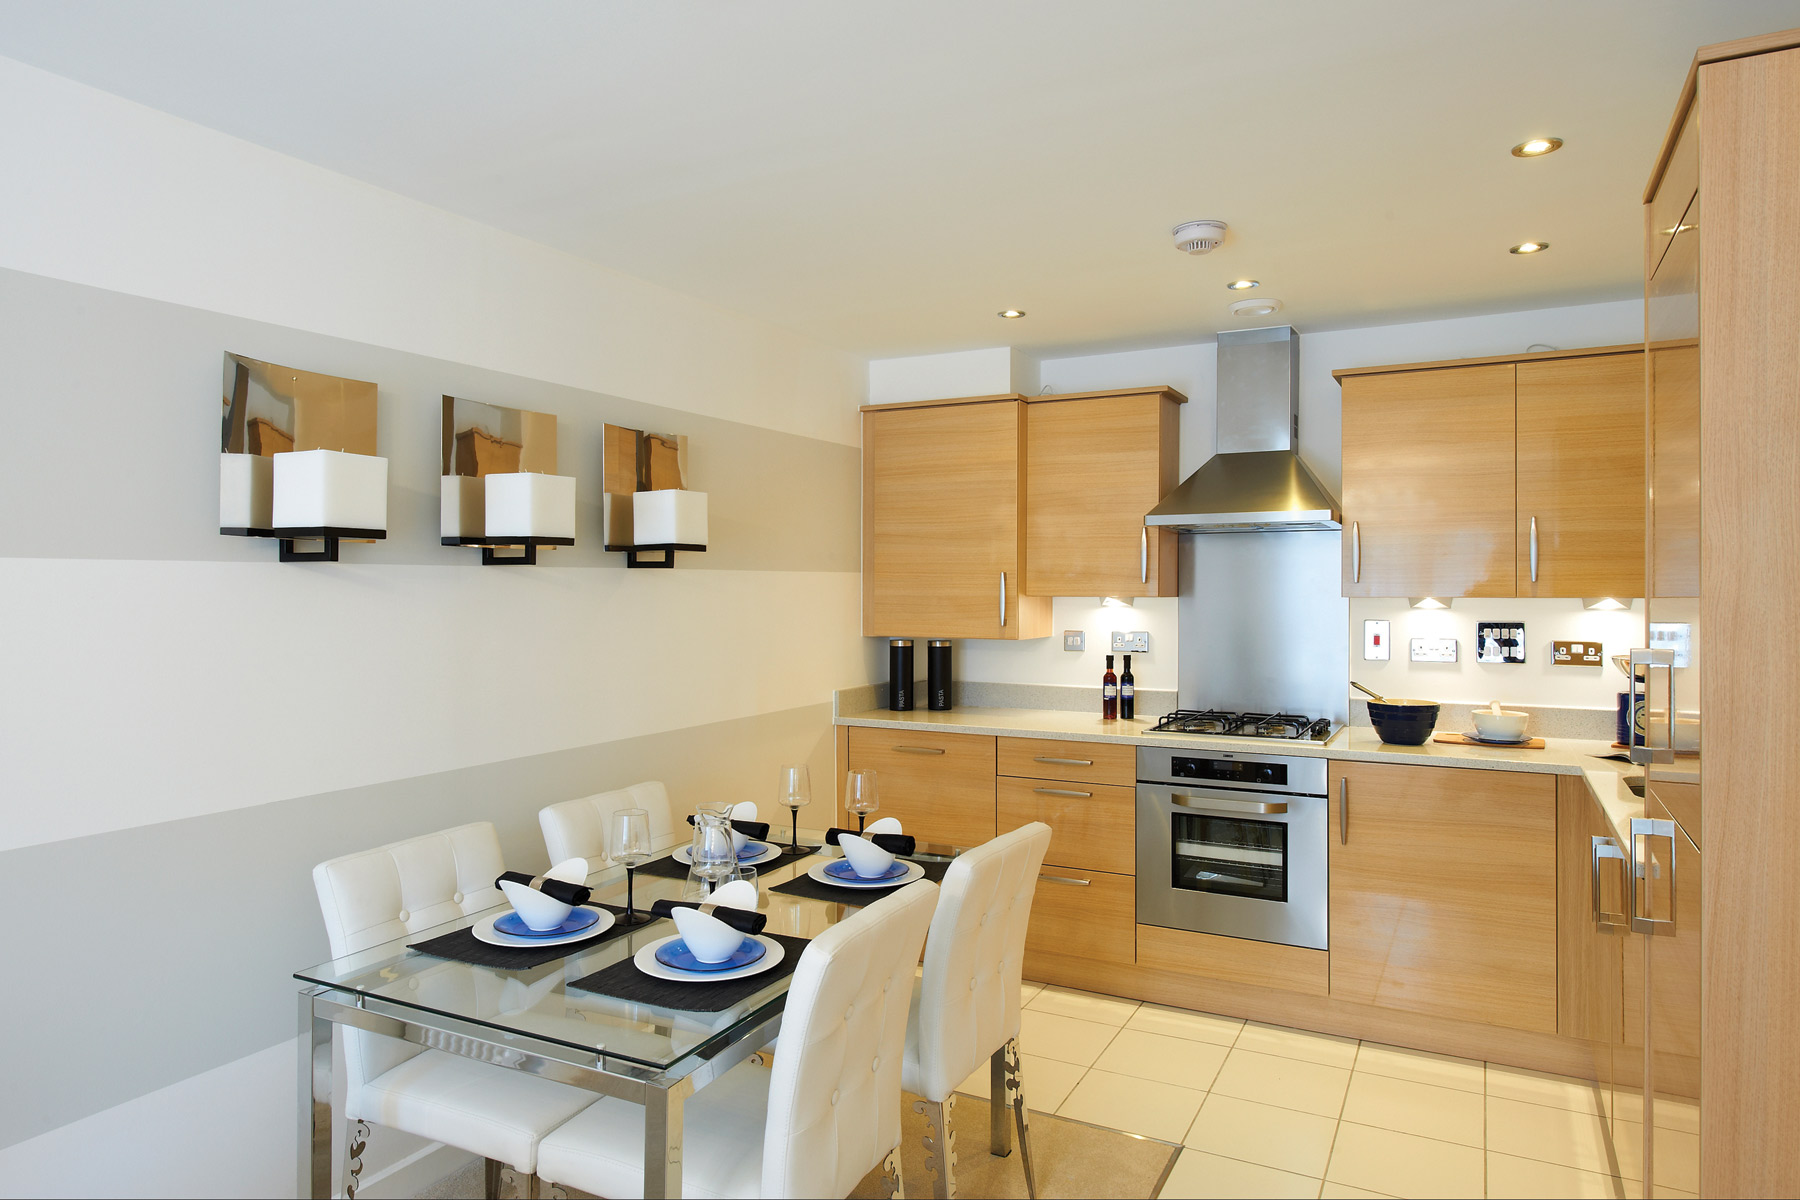 A typical Taylor Wimpey apartment kitchen